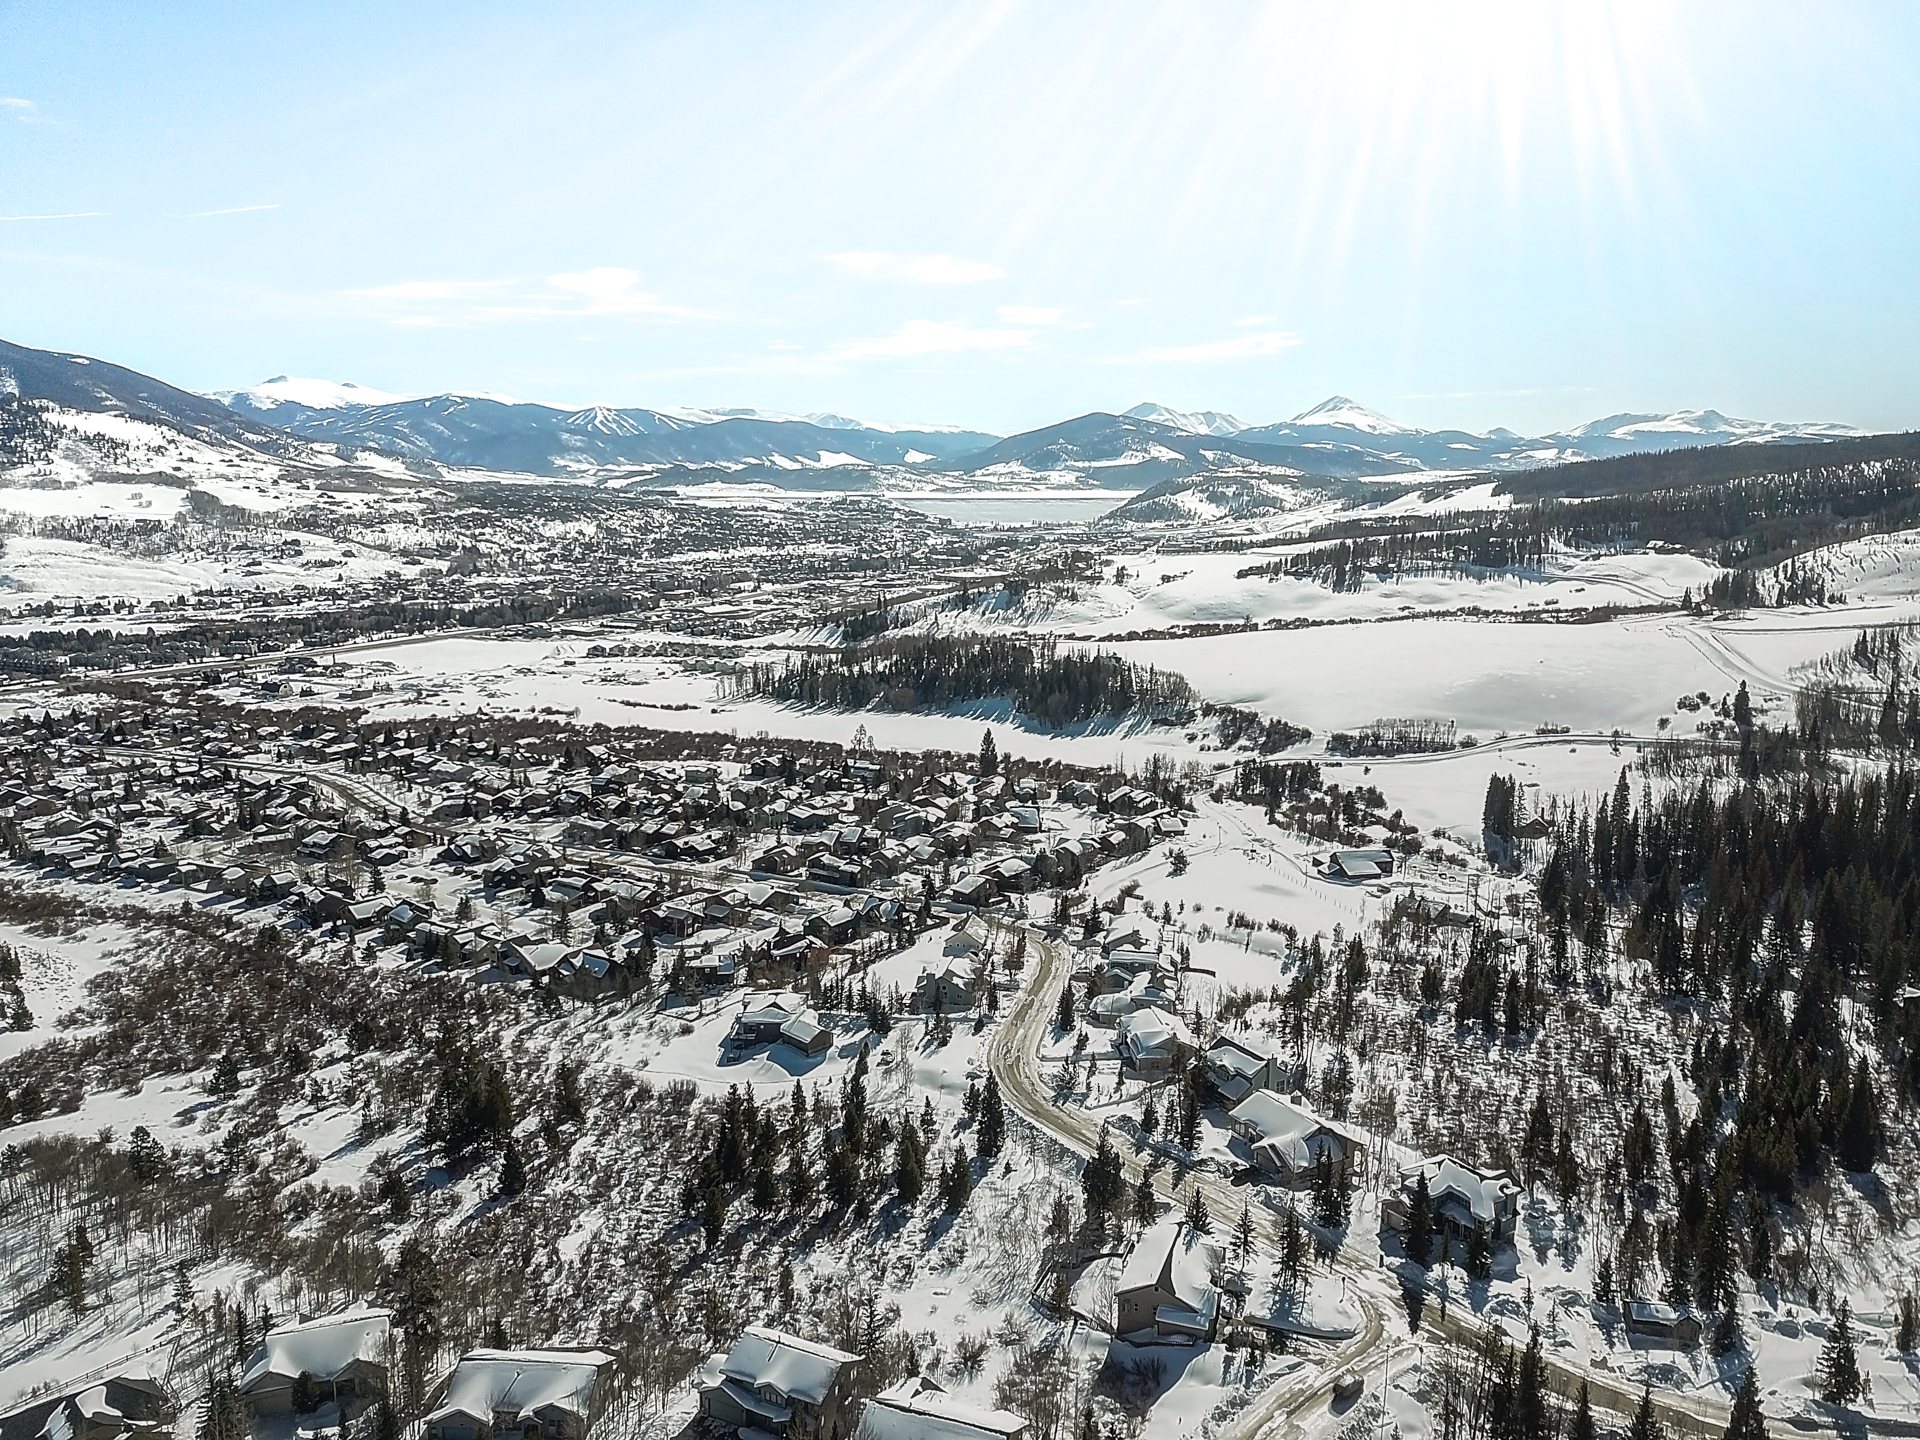 Aerial view of Silverthorne towards Lake Dillon